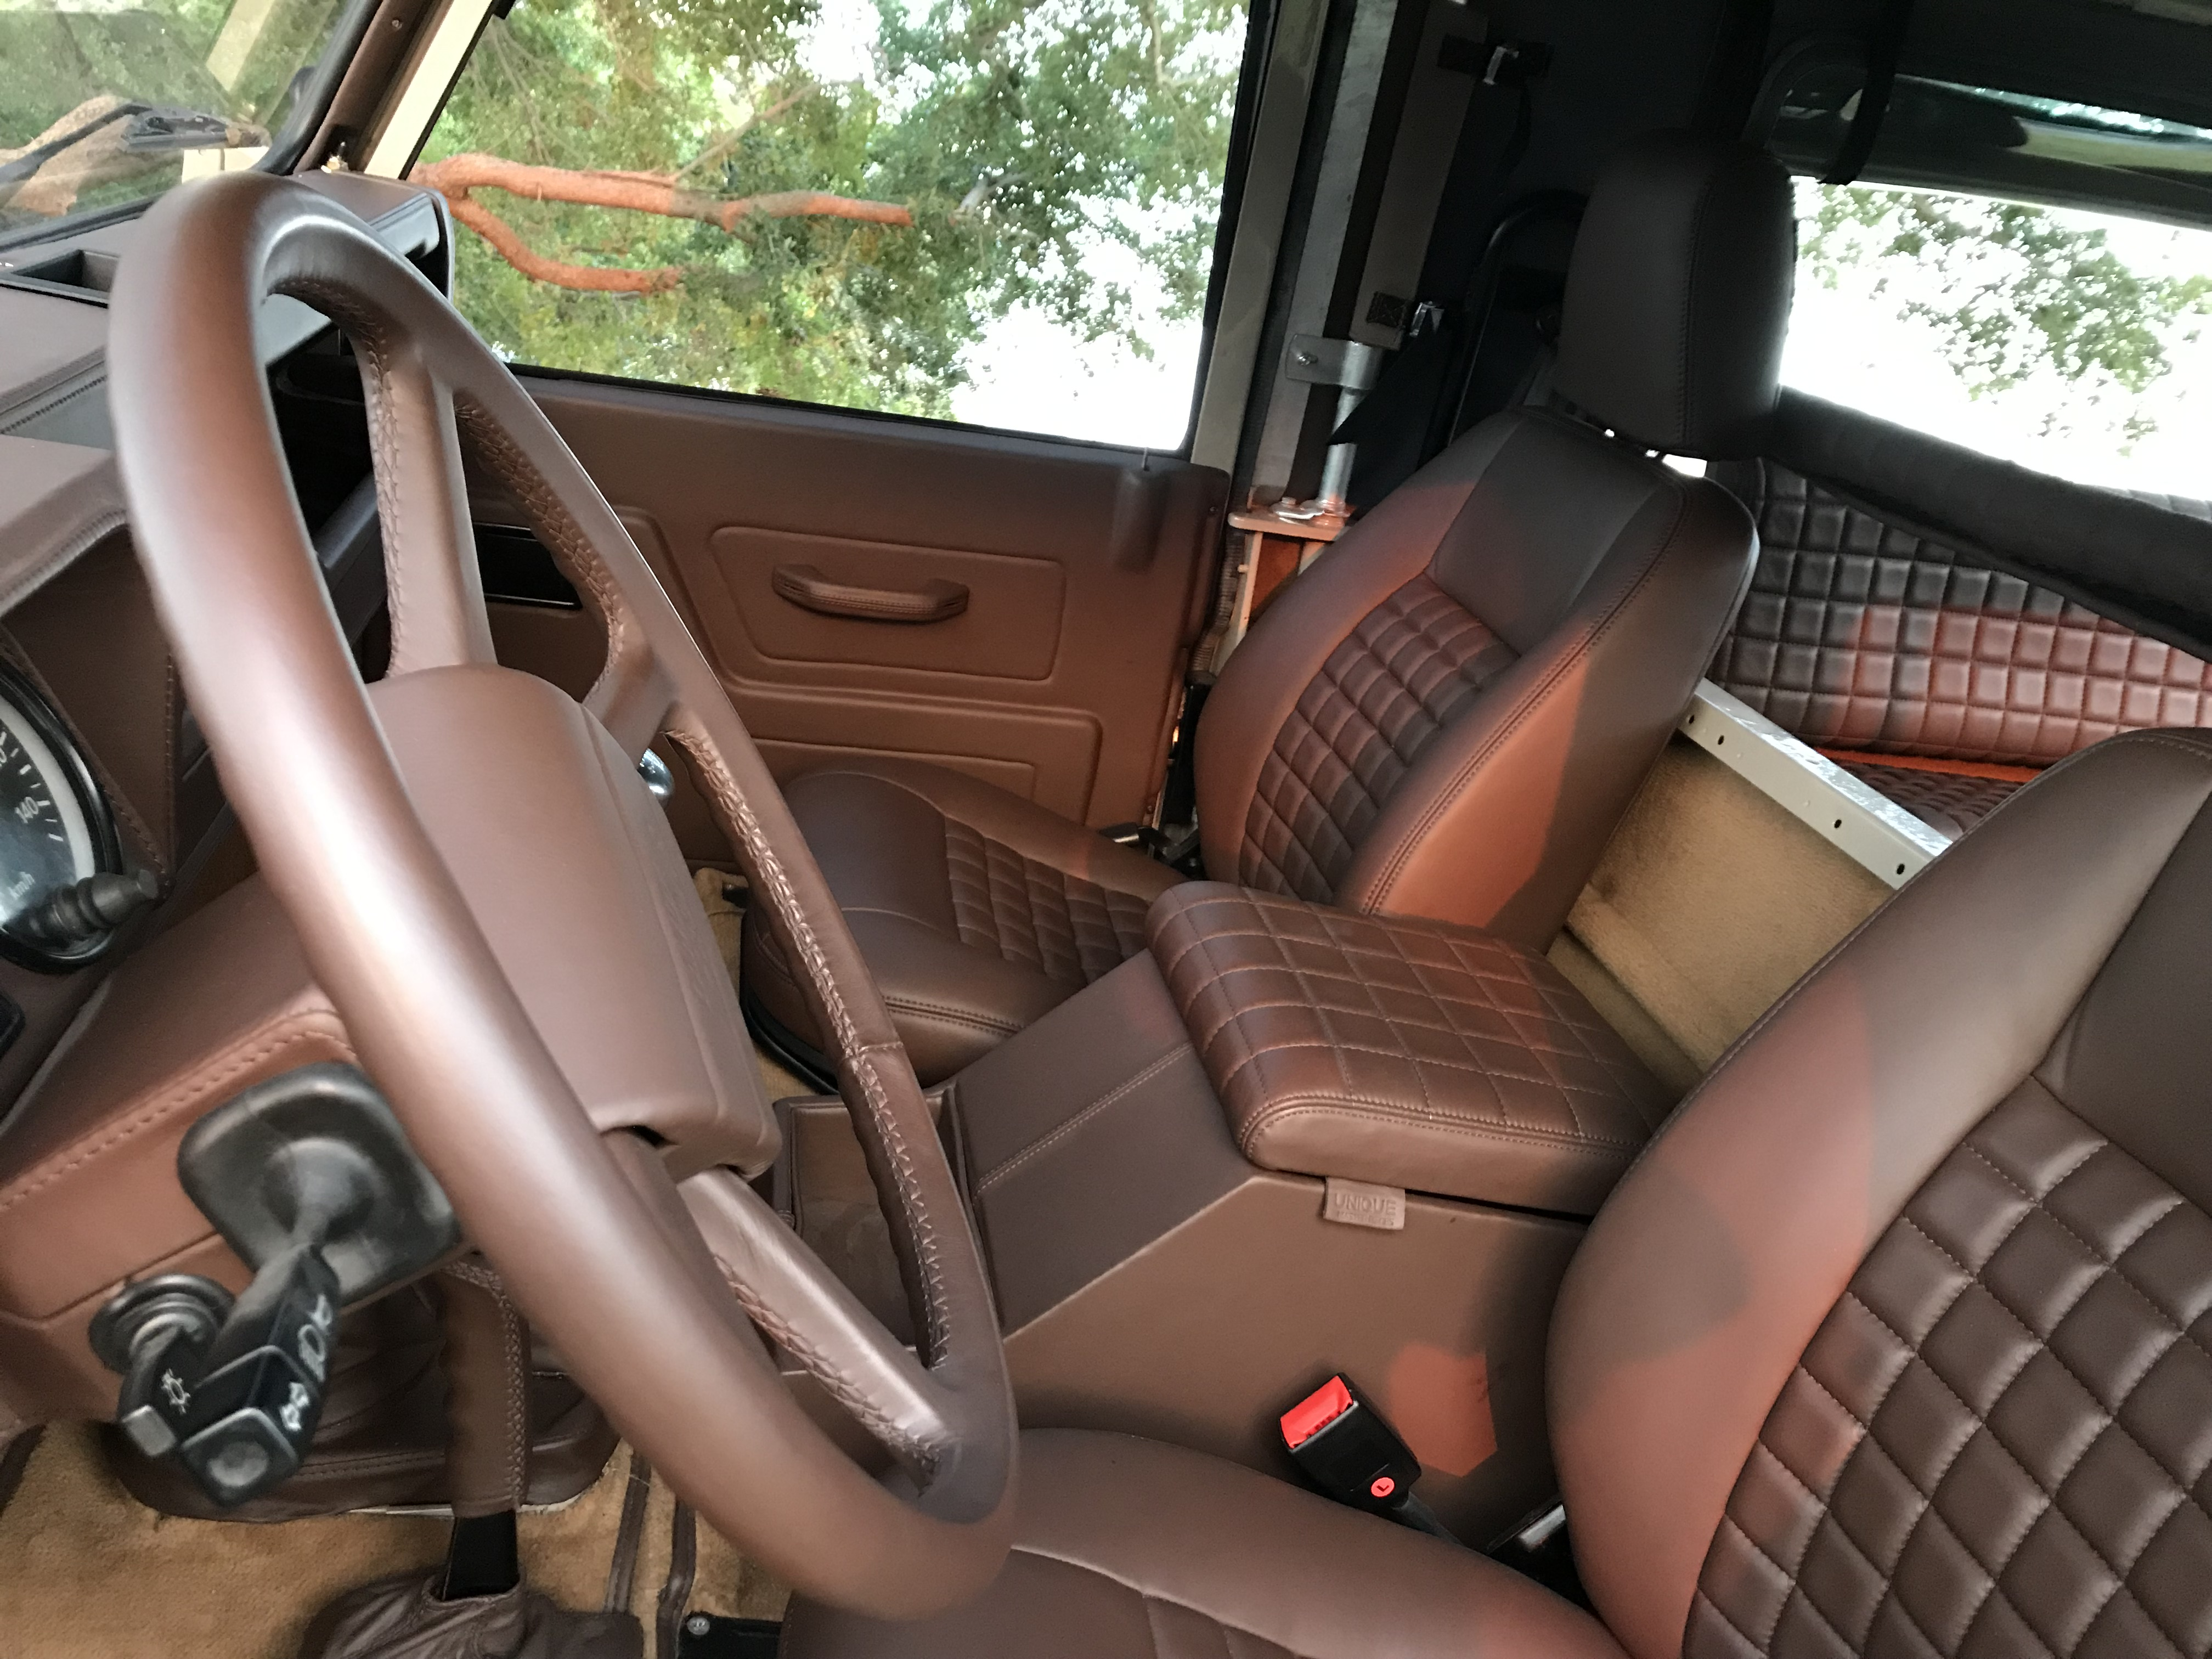 Land Rover Defender seats